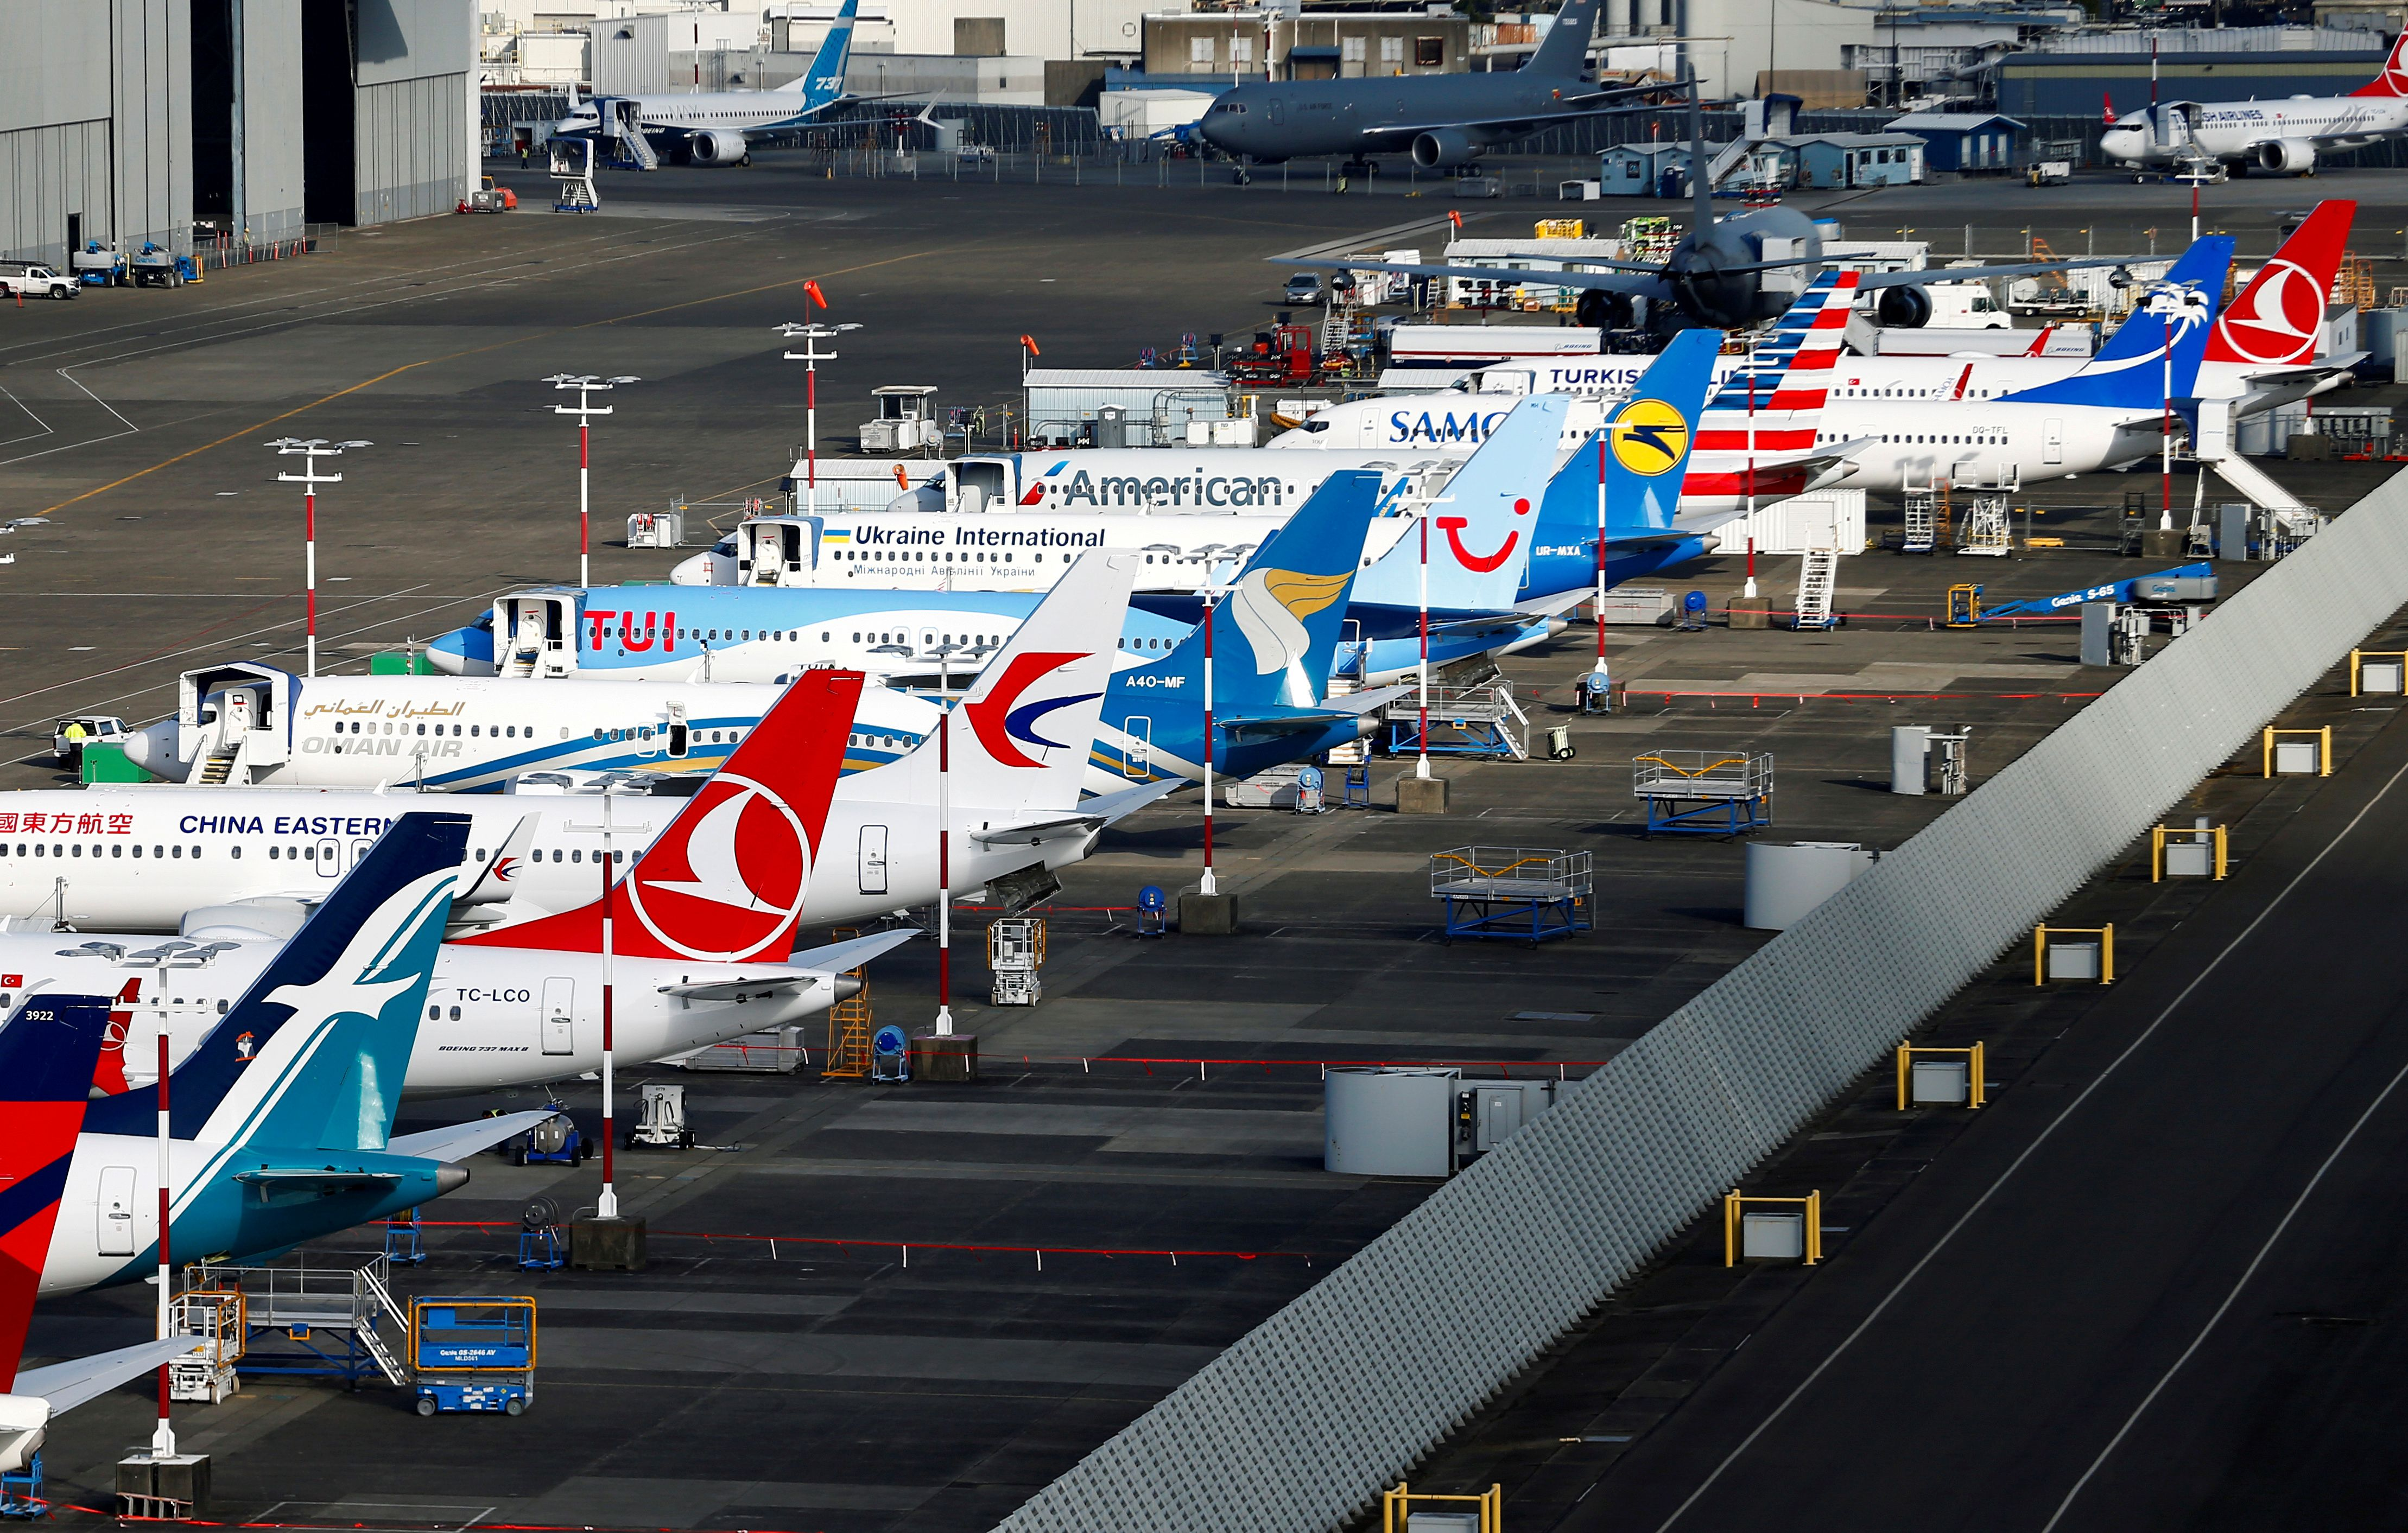 Boeing reportedly resisted pilots' angry calls for 737 Max fix last fall